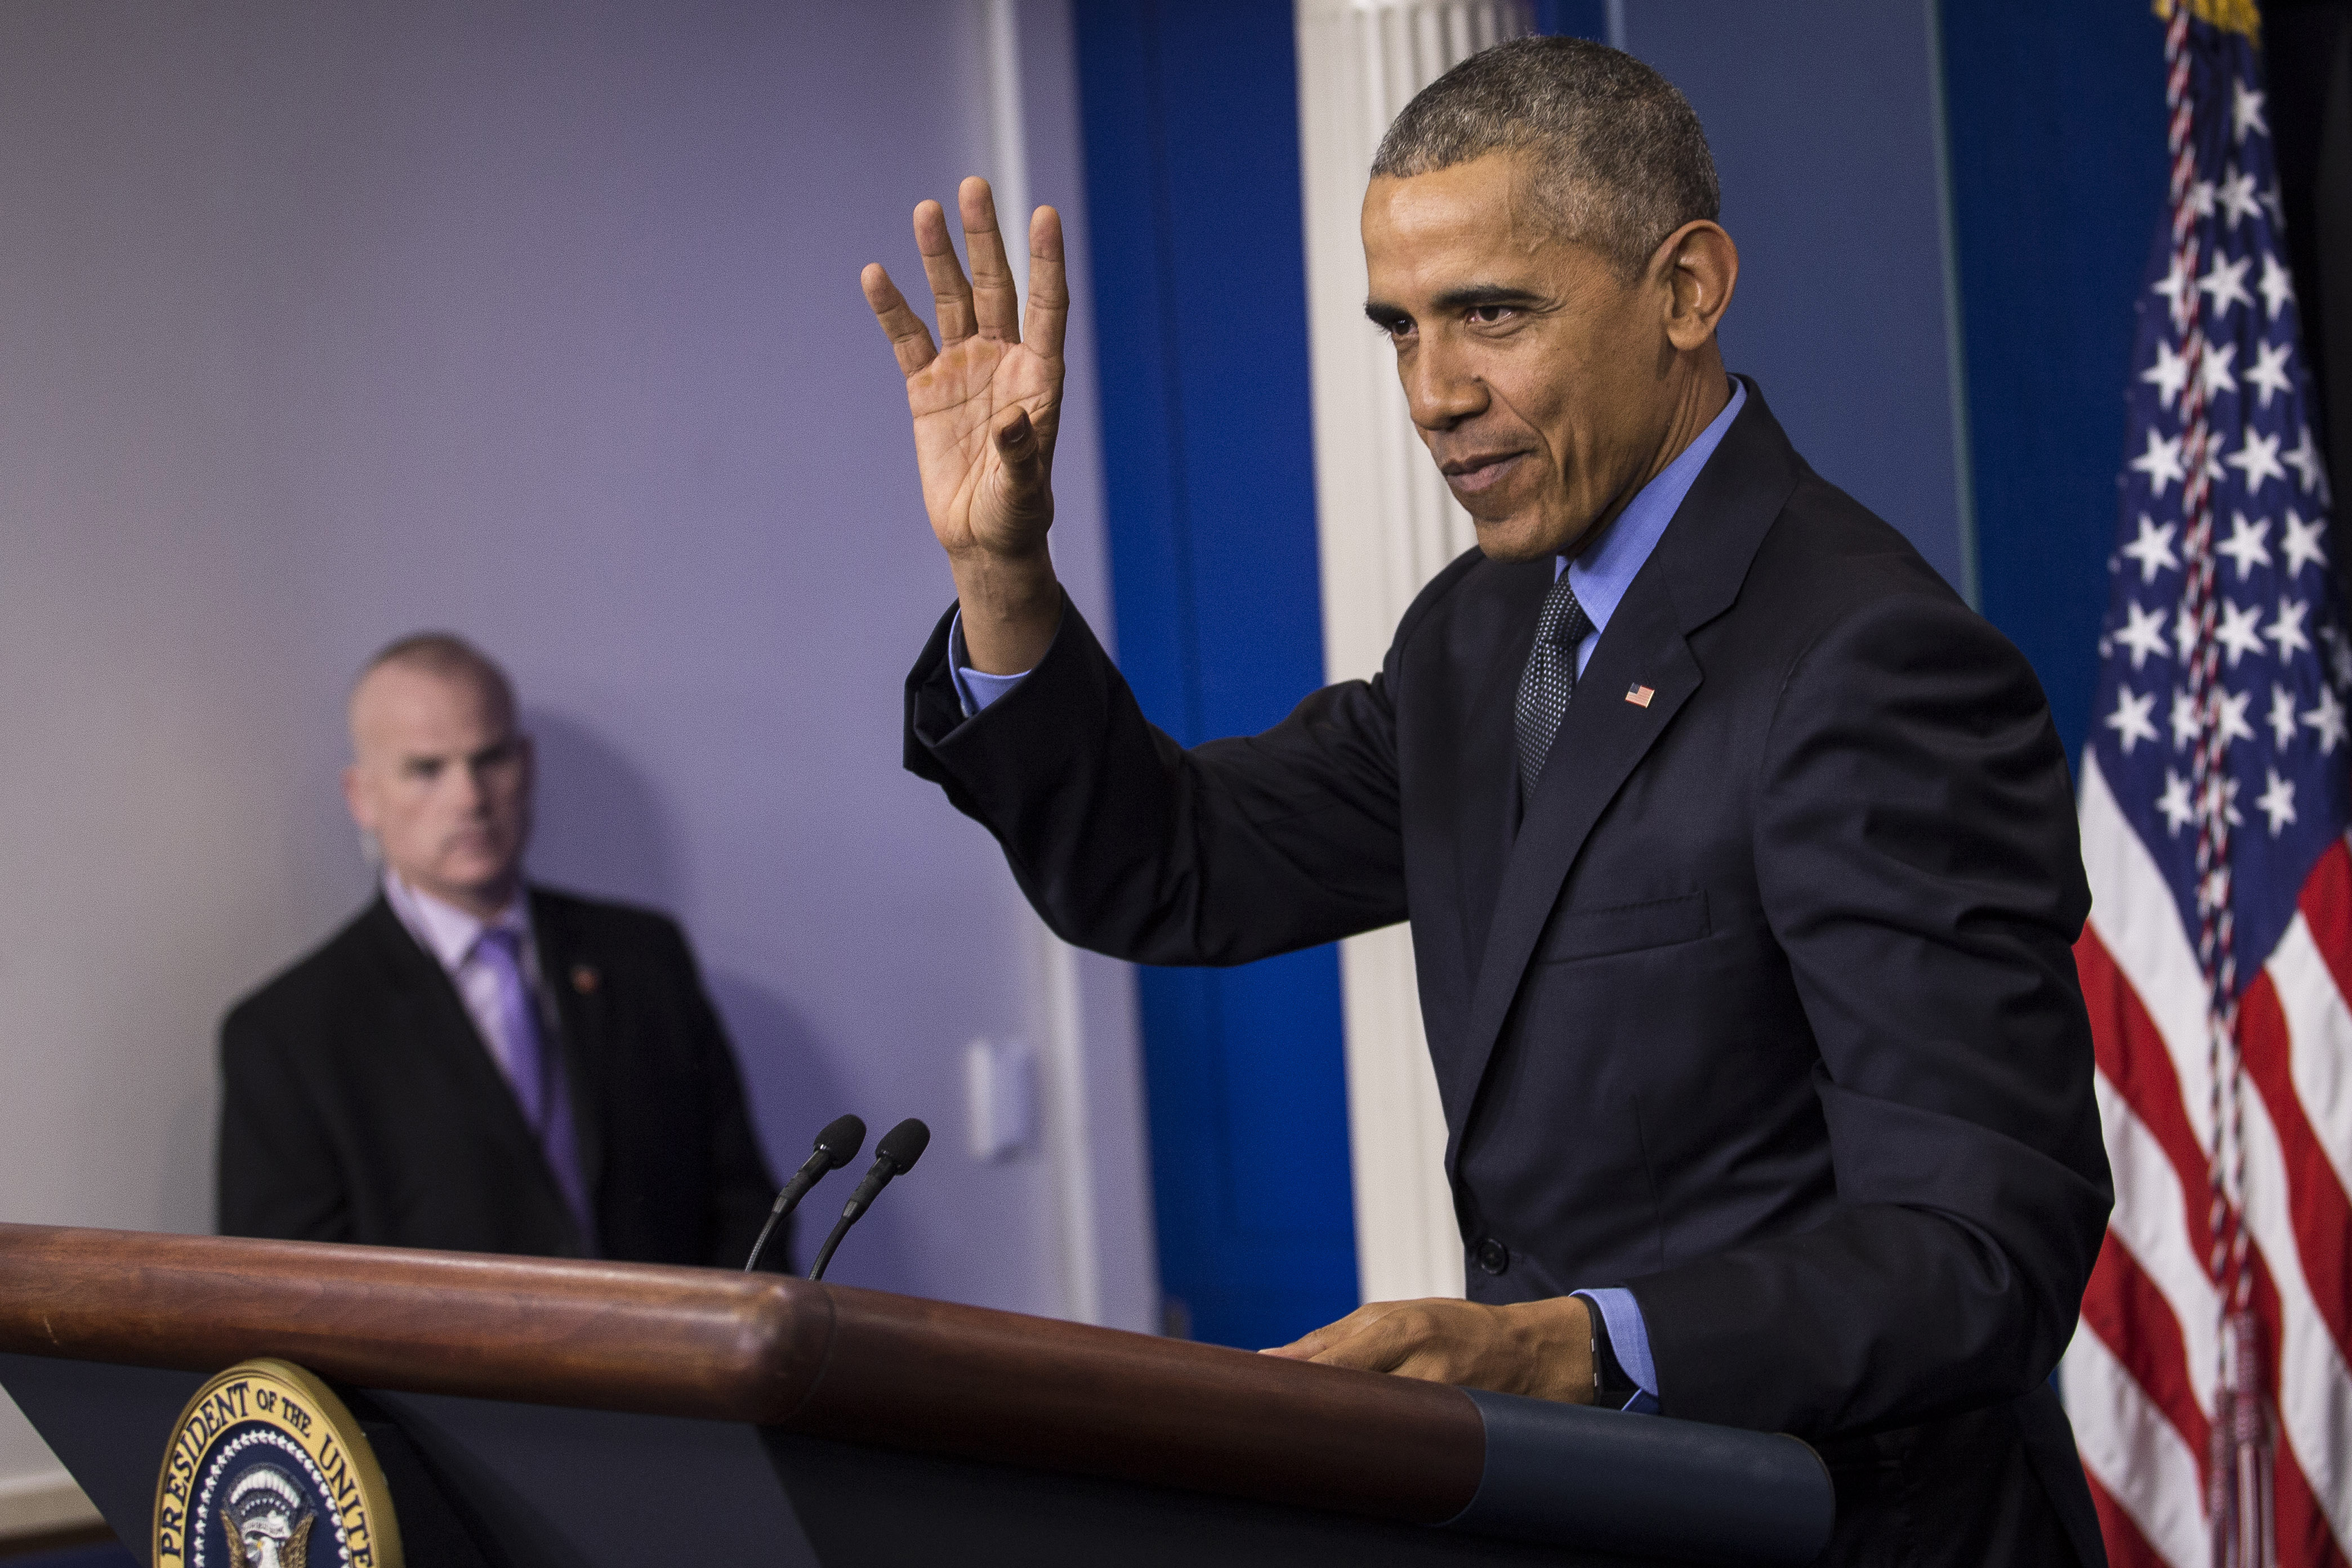 President Barack Obama Holds News Conference Before Hawaii Vacation